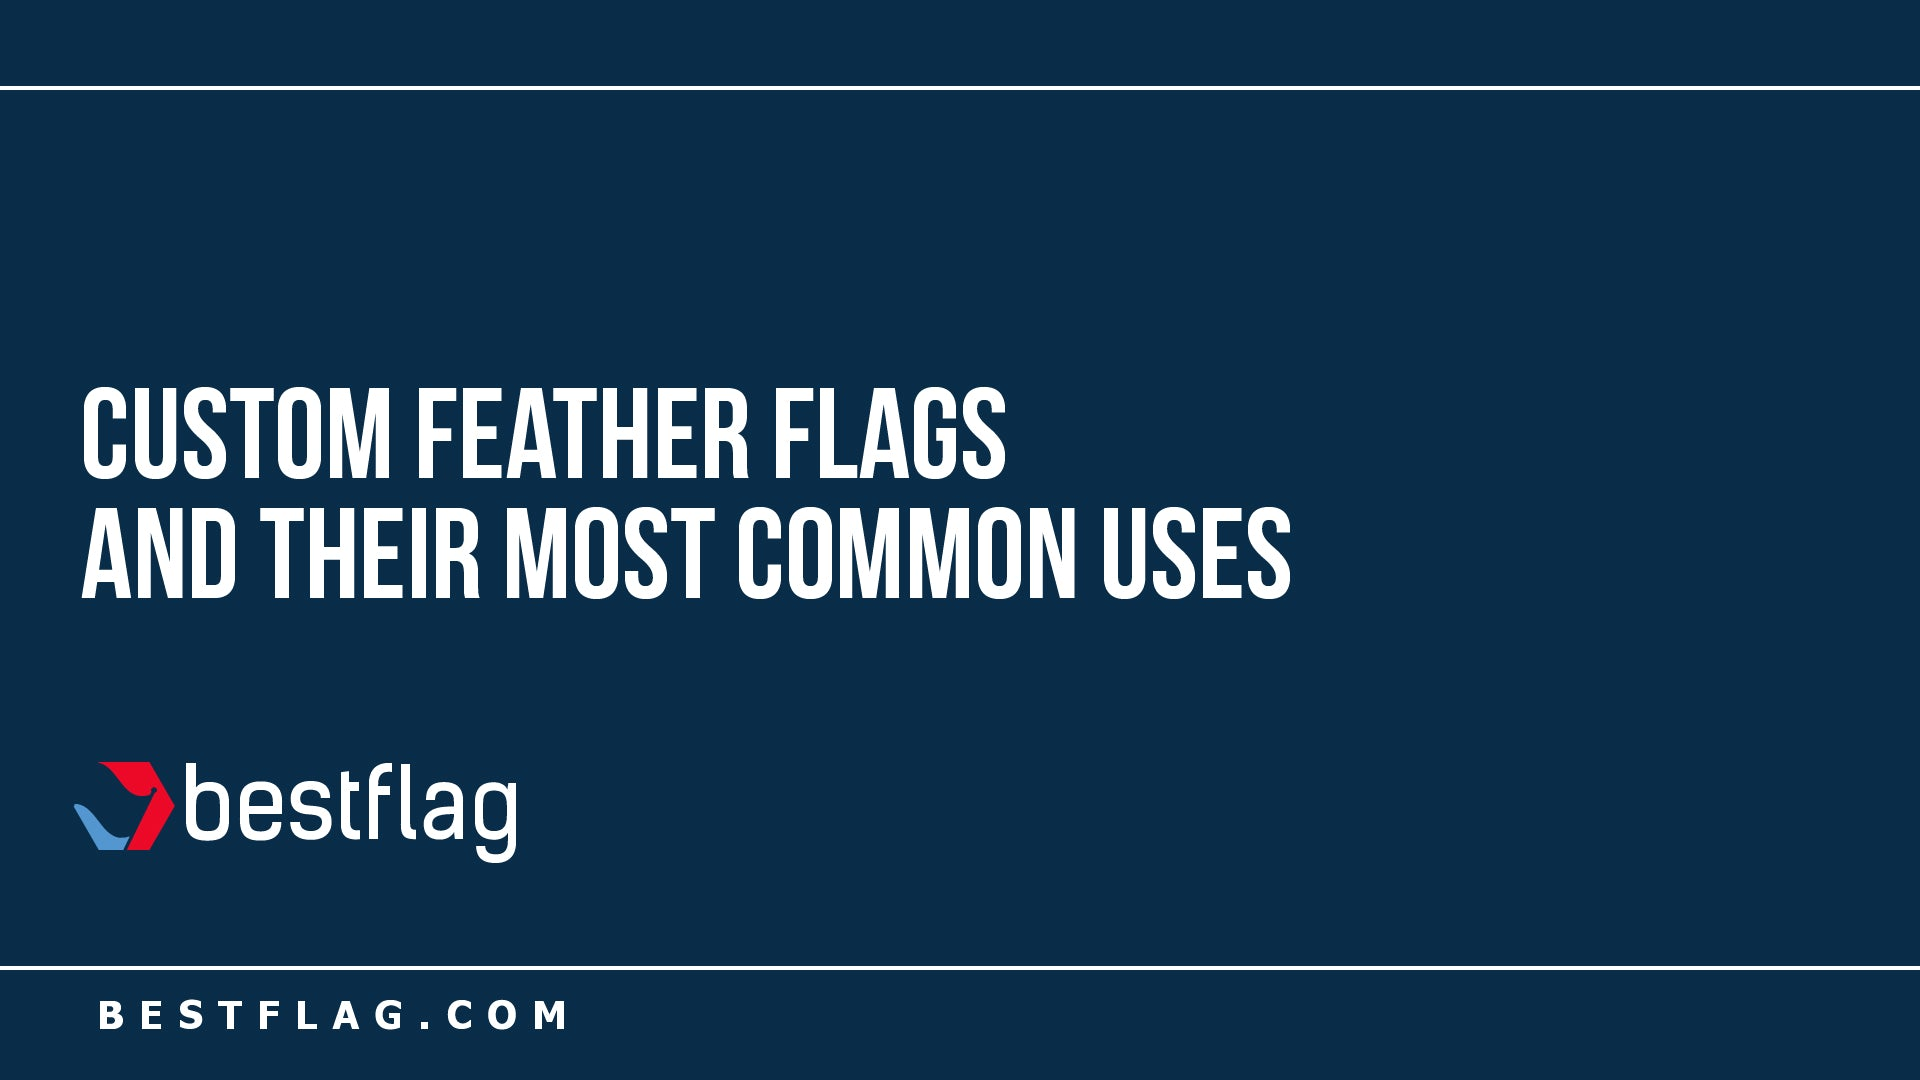 Custom Feather Flags and their Most Common Uses